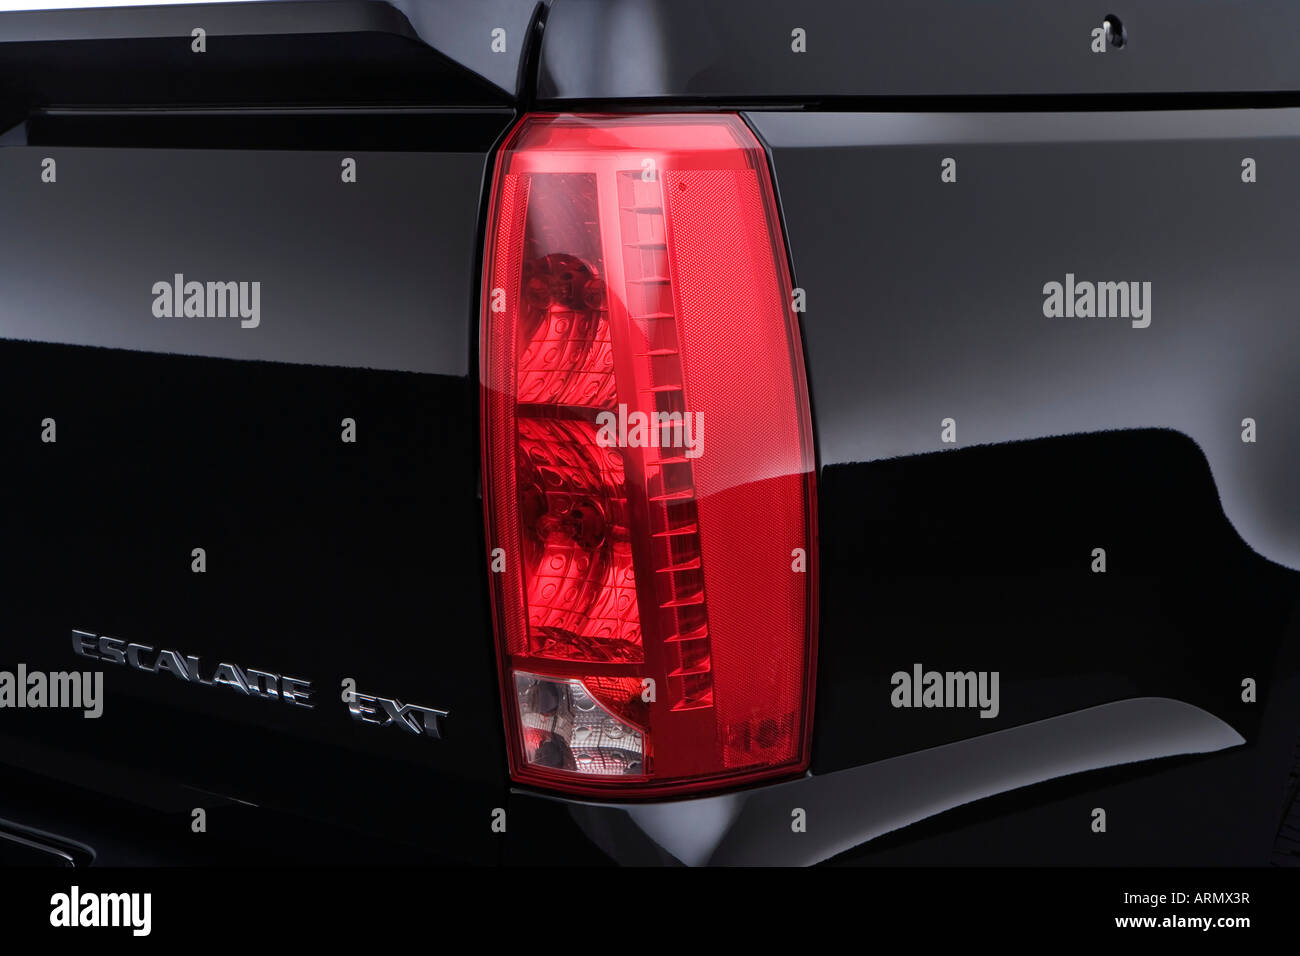 2008 cadillac escalade ext in black tail light